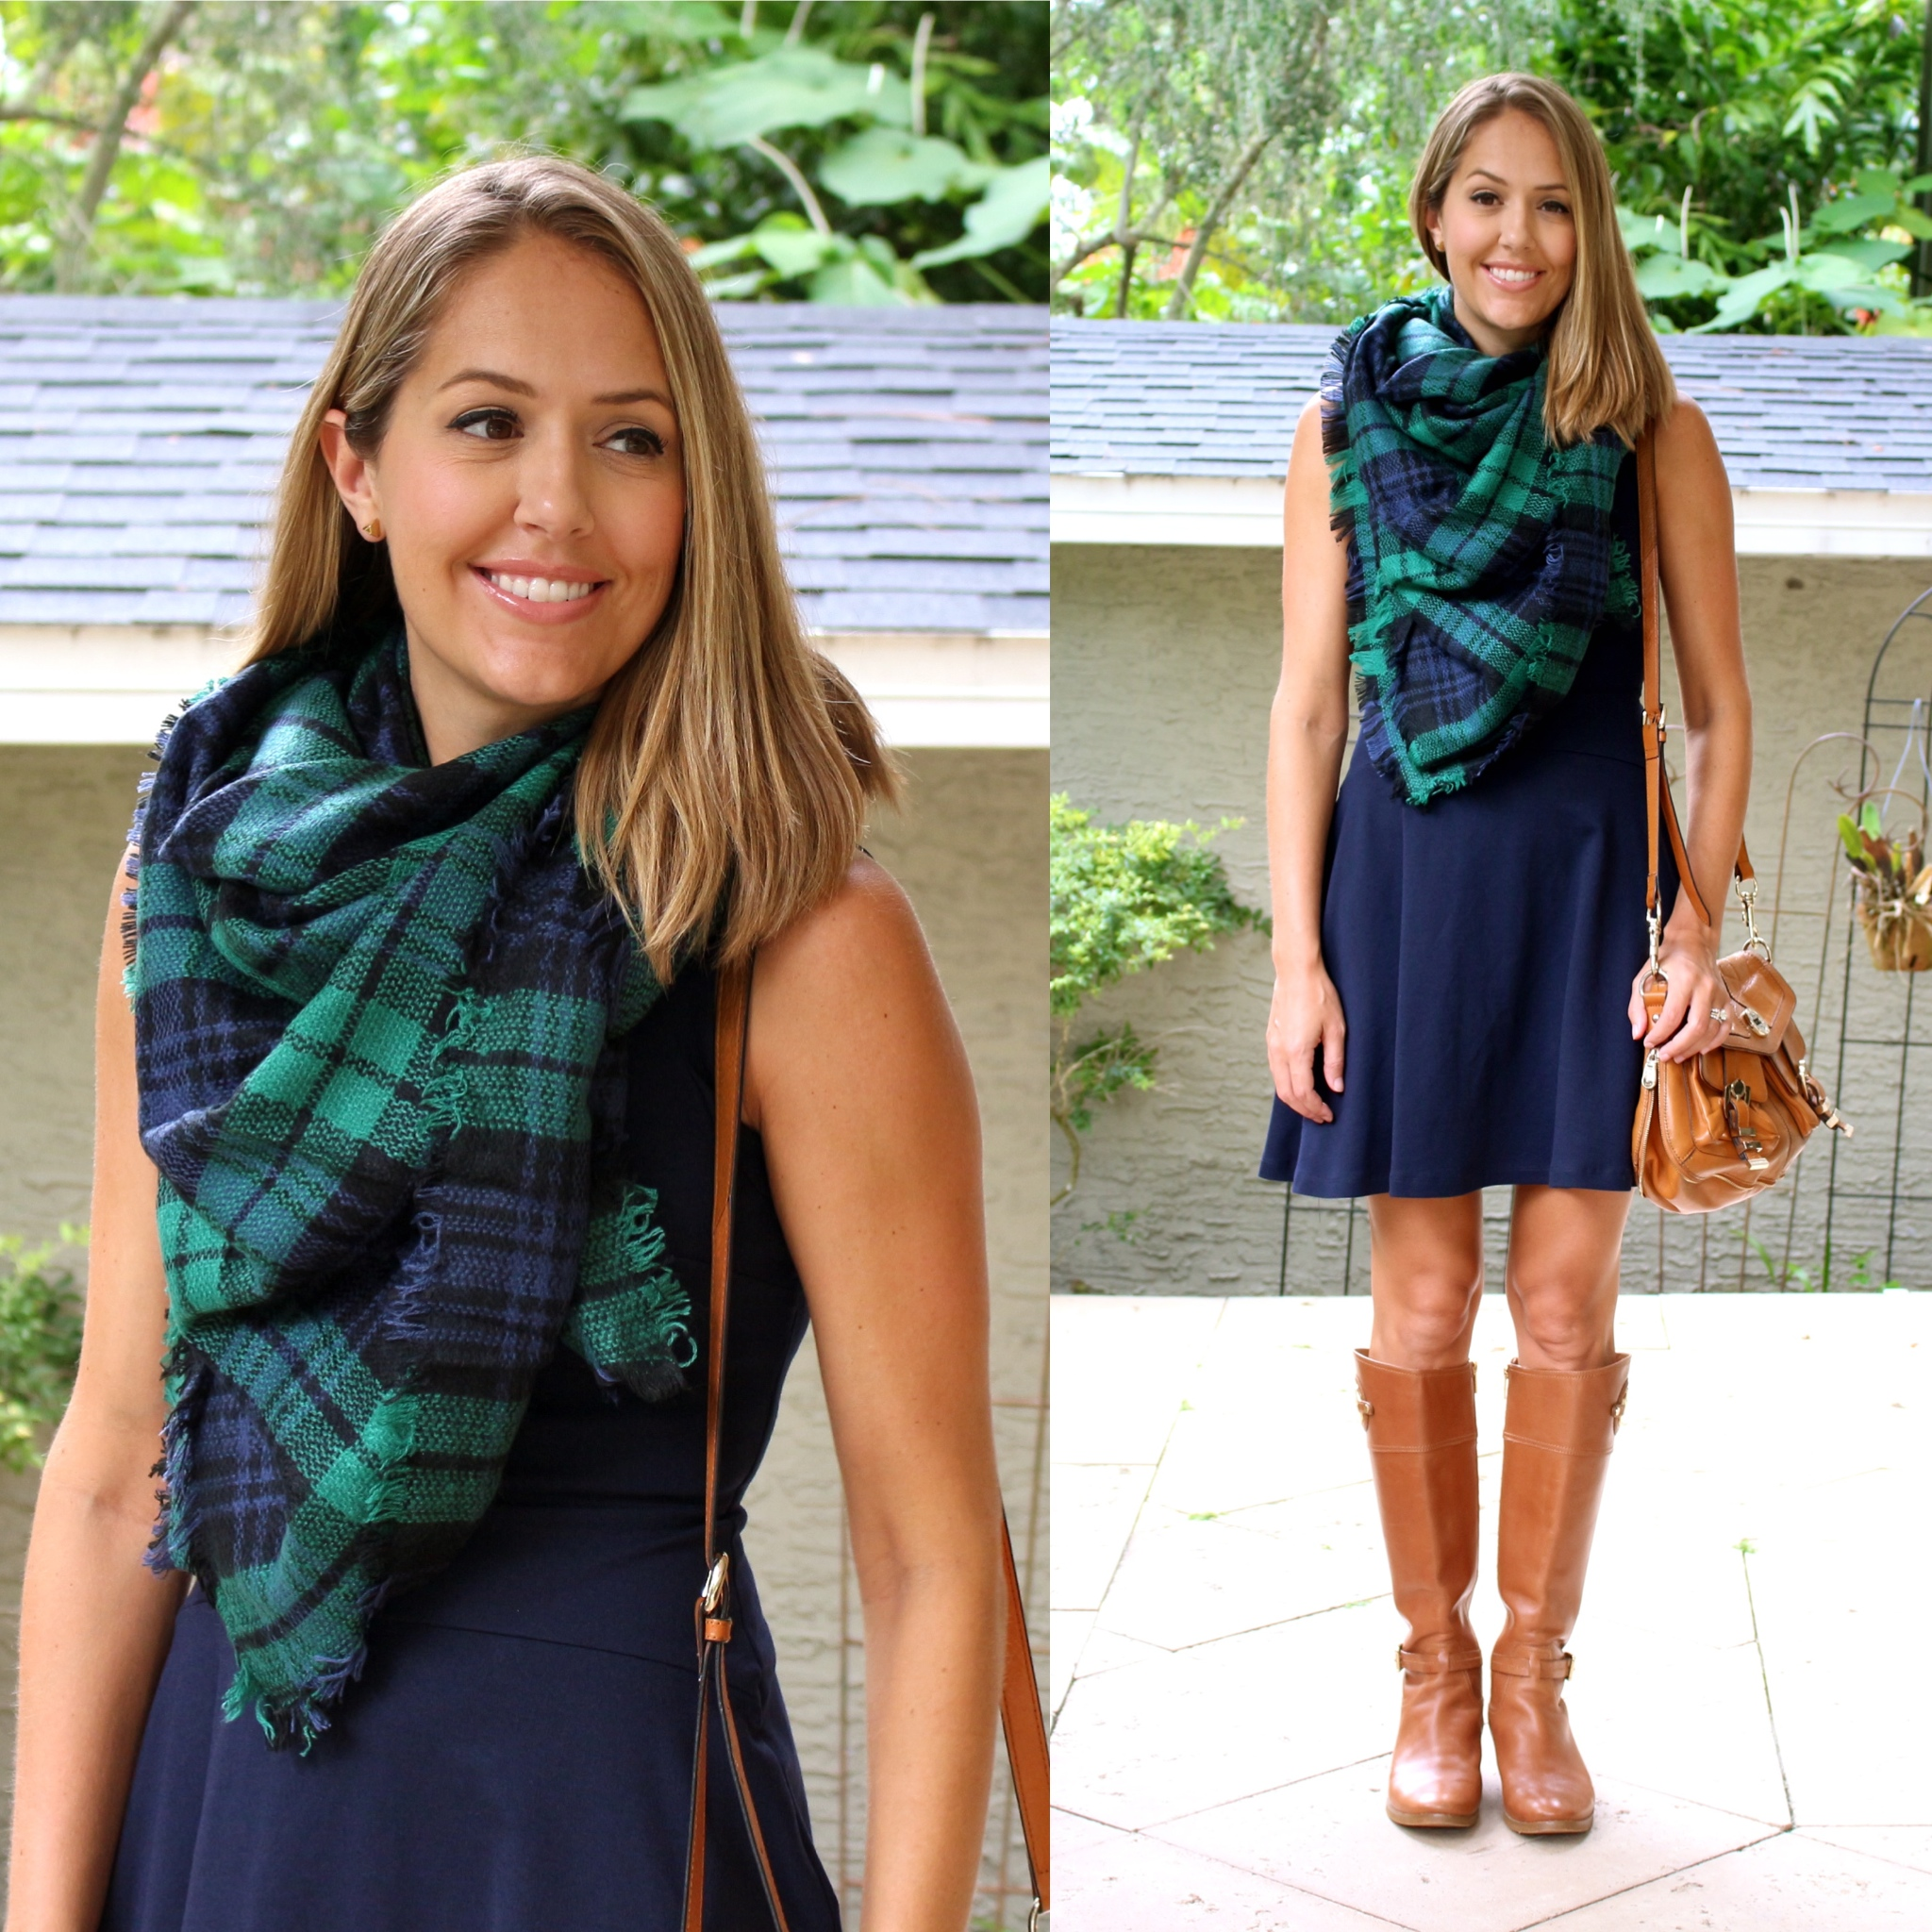 Jane.com $500 giveaway - plaid scarf